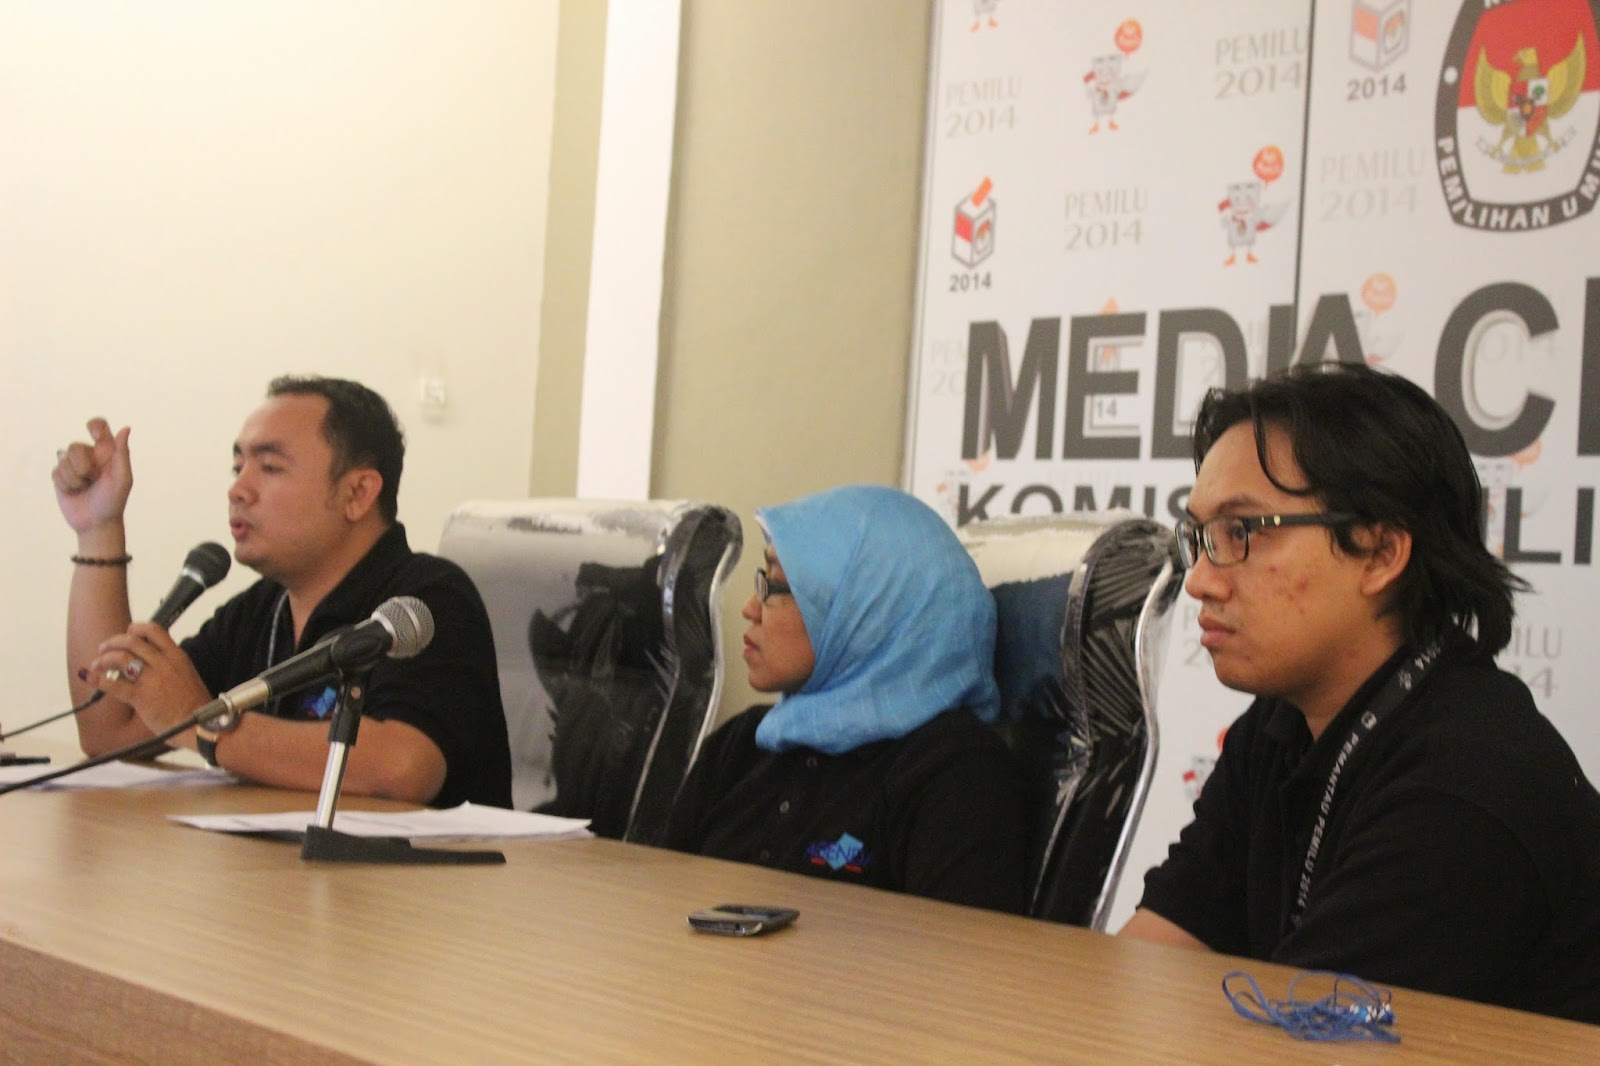 AGENDA Program Manager, Disability Rights Advisor and Program Officer ar Press Conference 9 July 2014